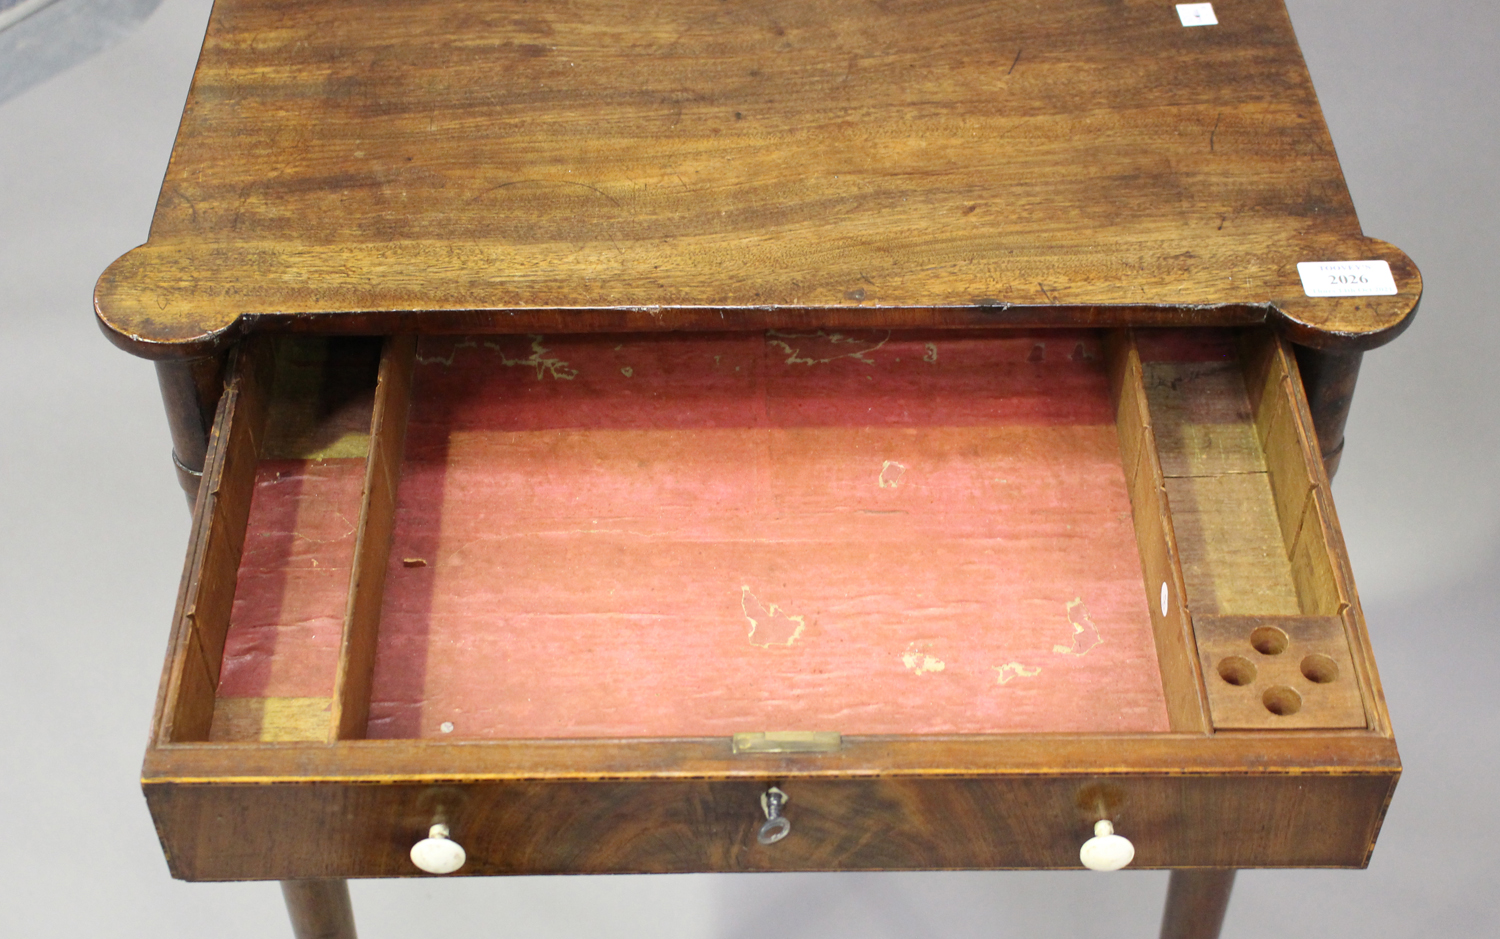 A George IV figured mahogany side table with projecting corners, the two drawers with bone handles - Image 7 of 8